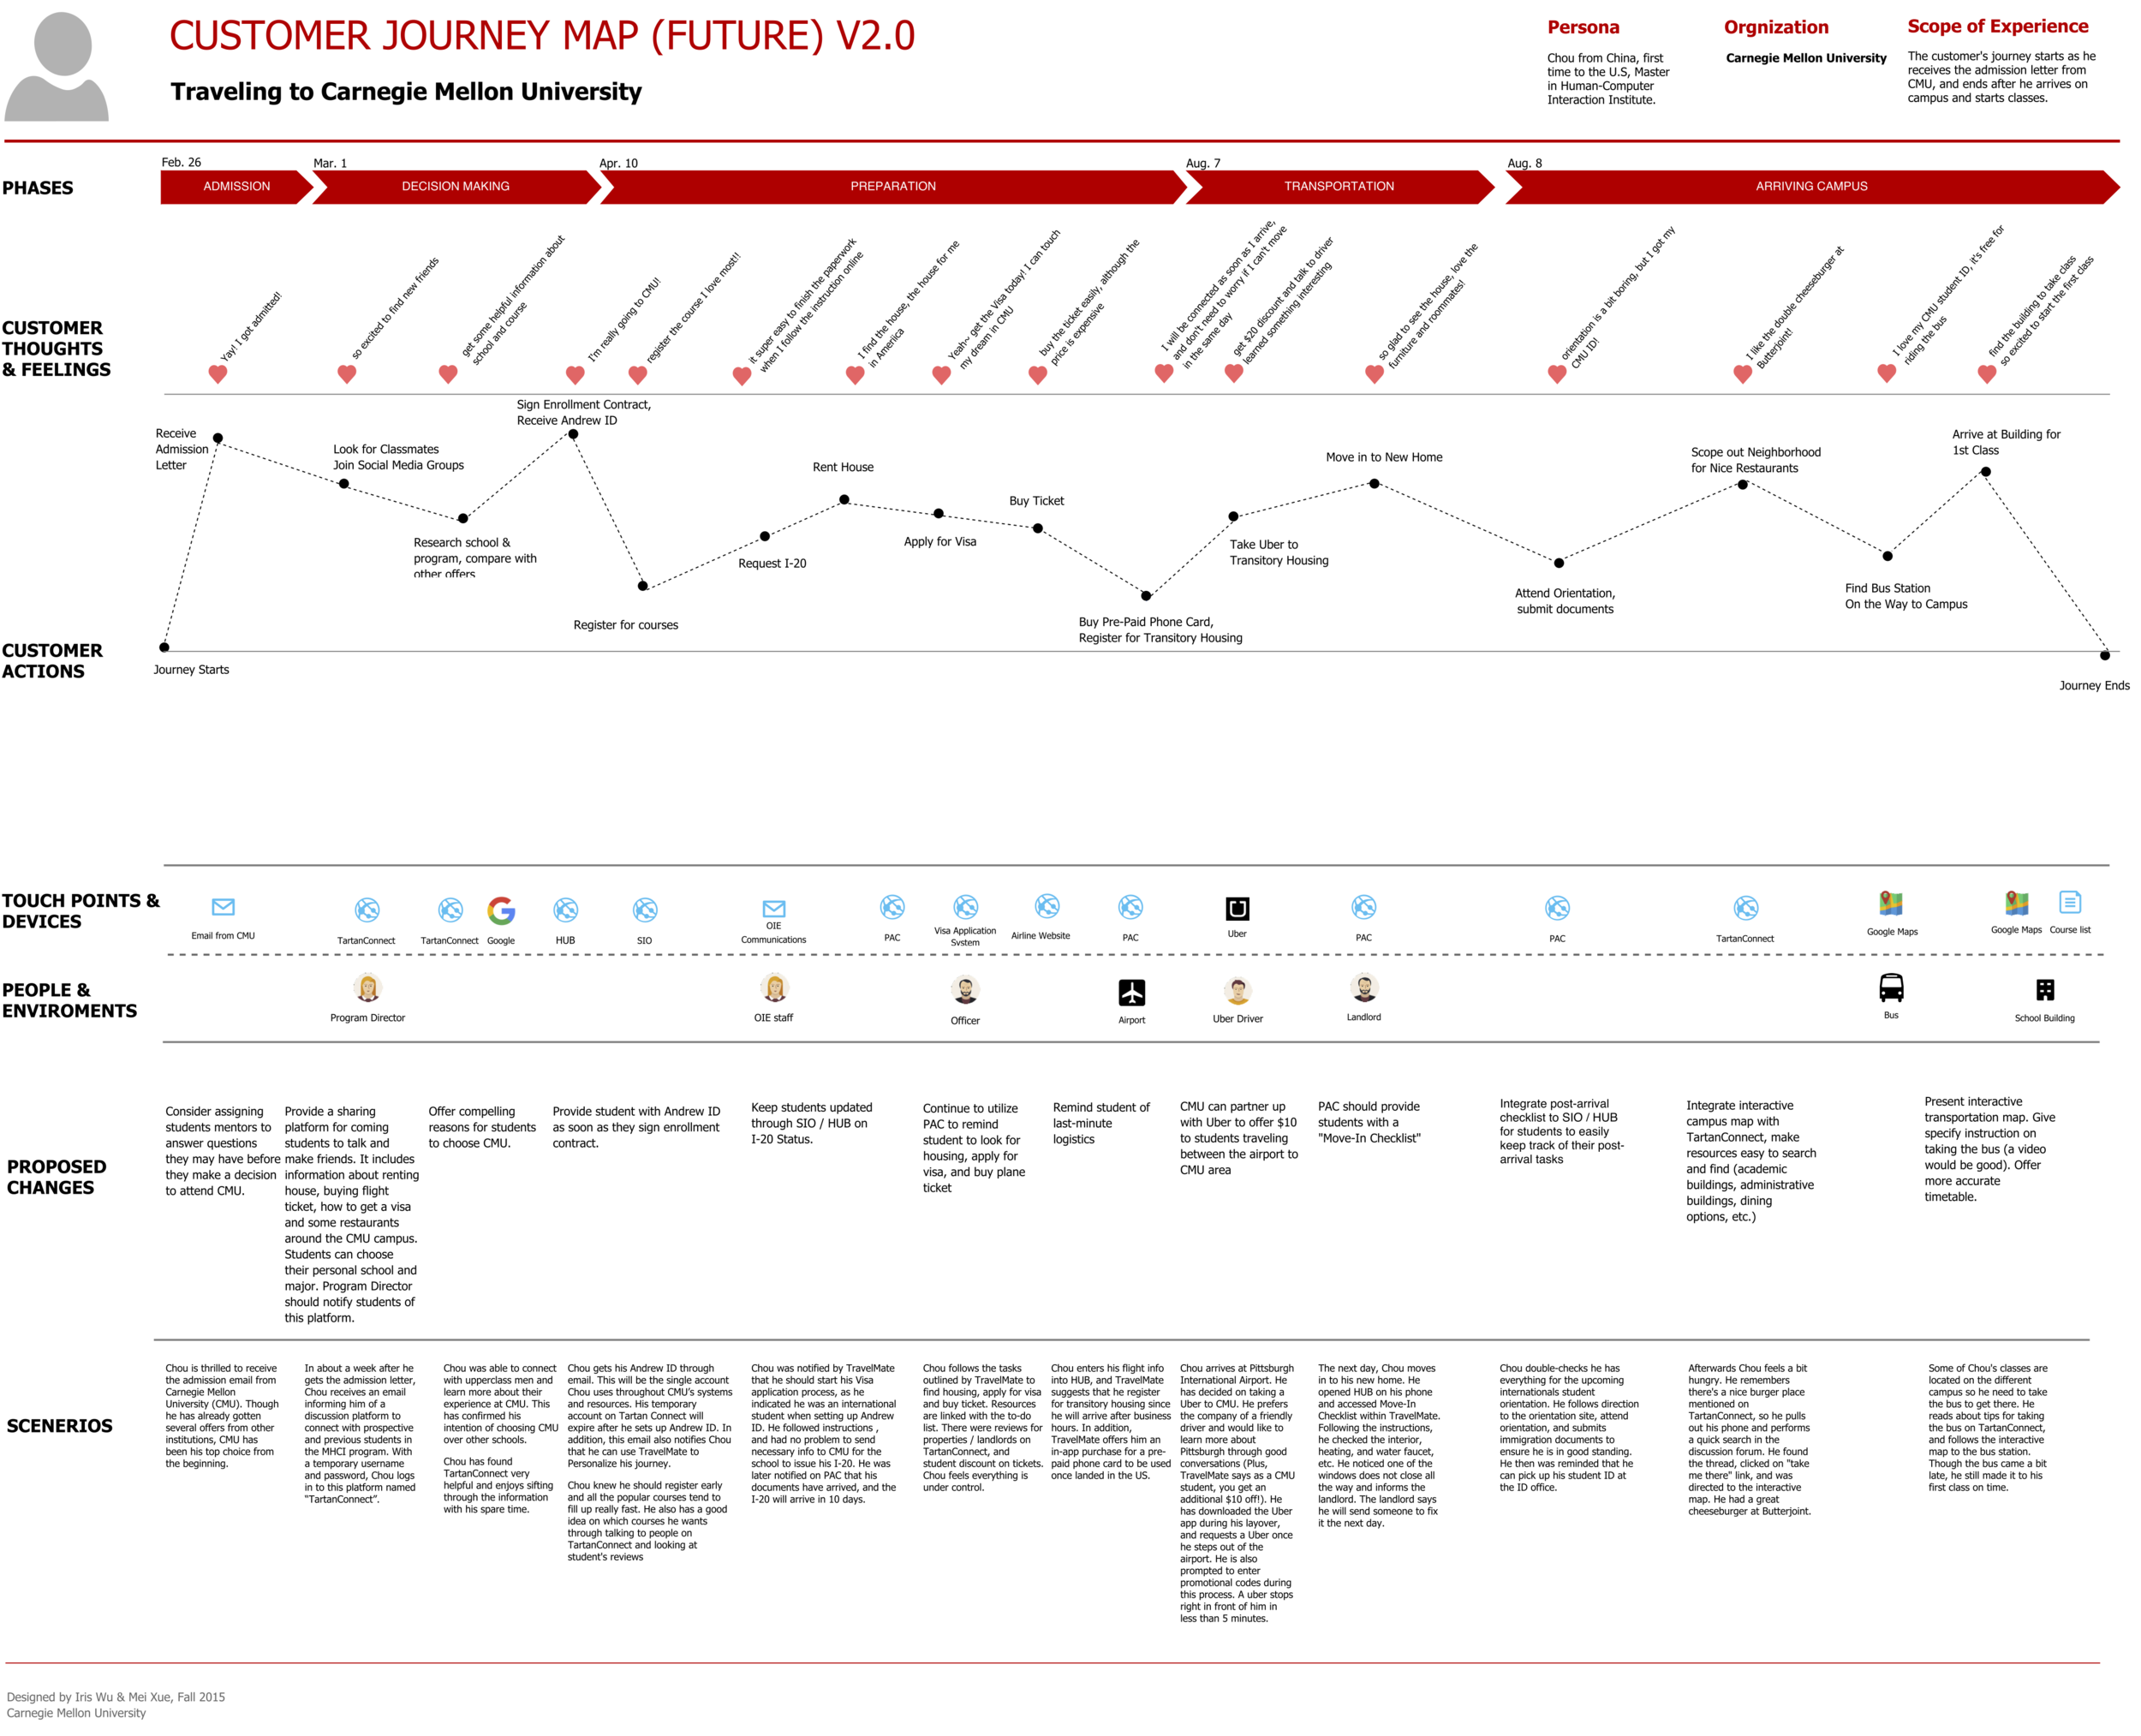 Future state of customer journey map